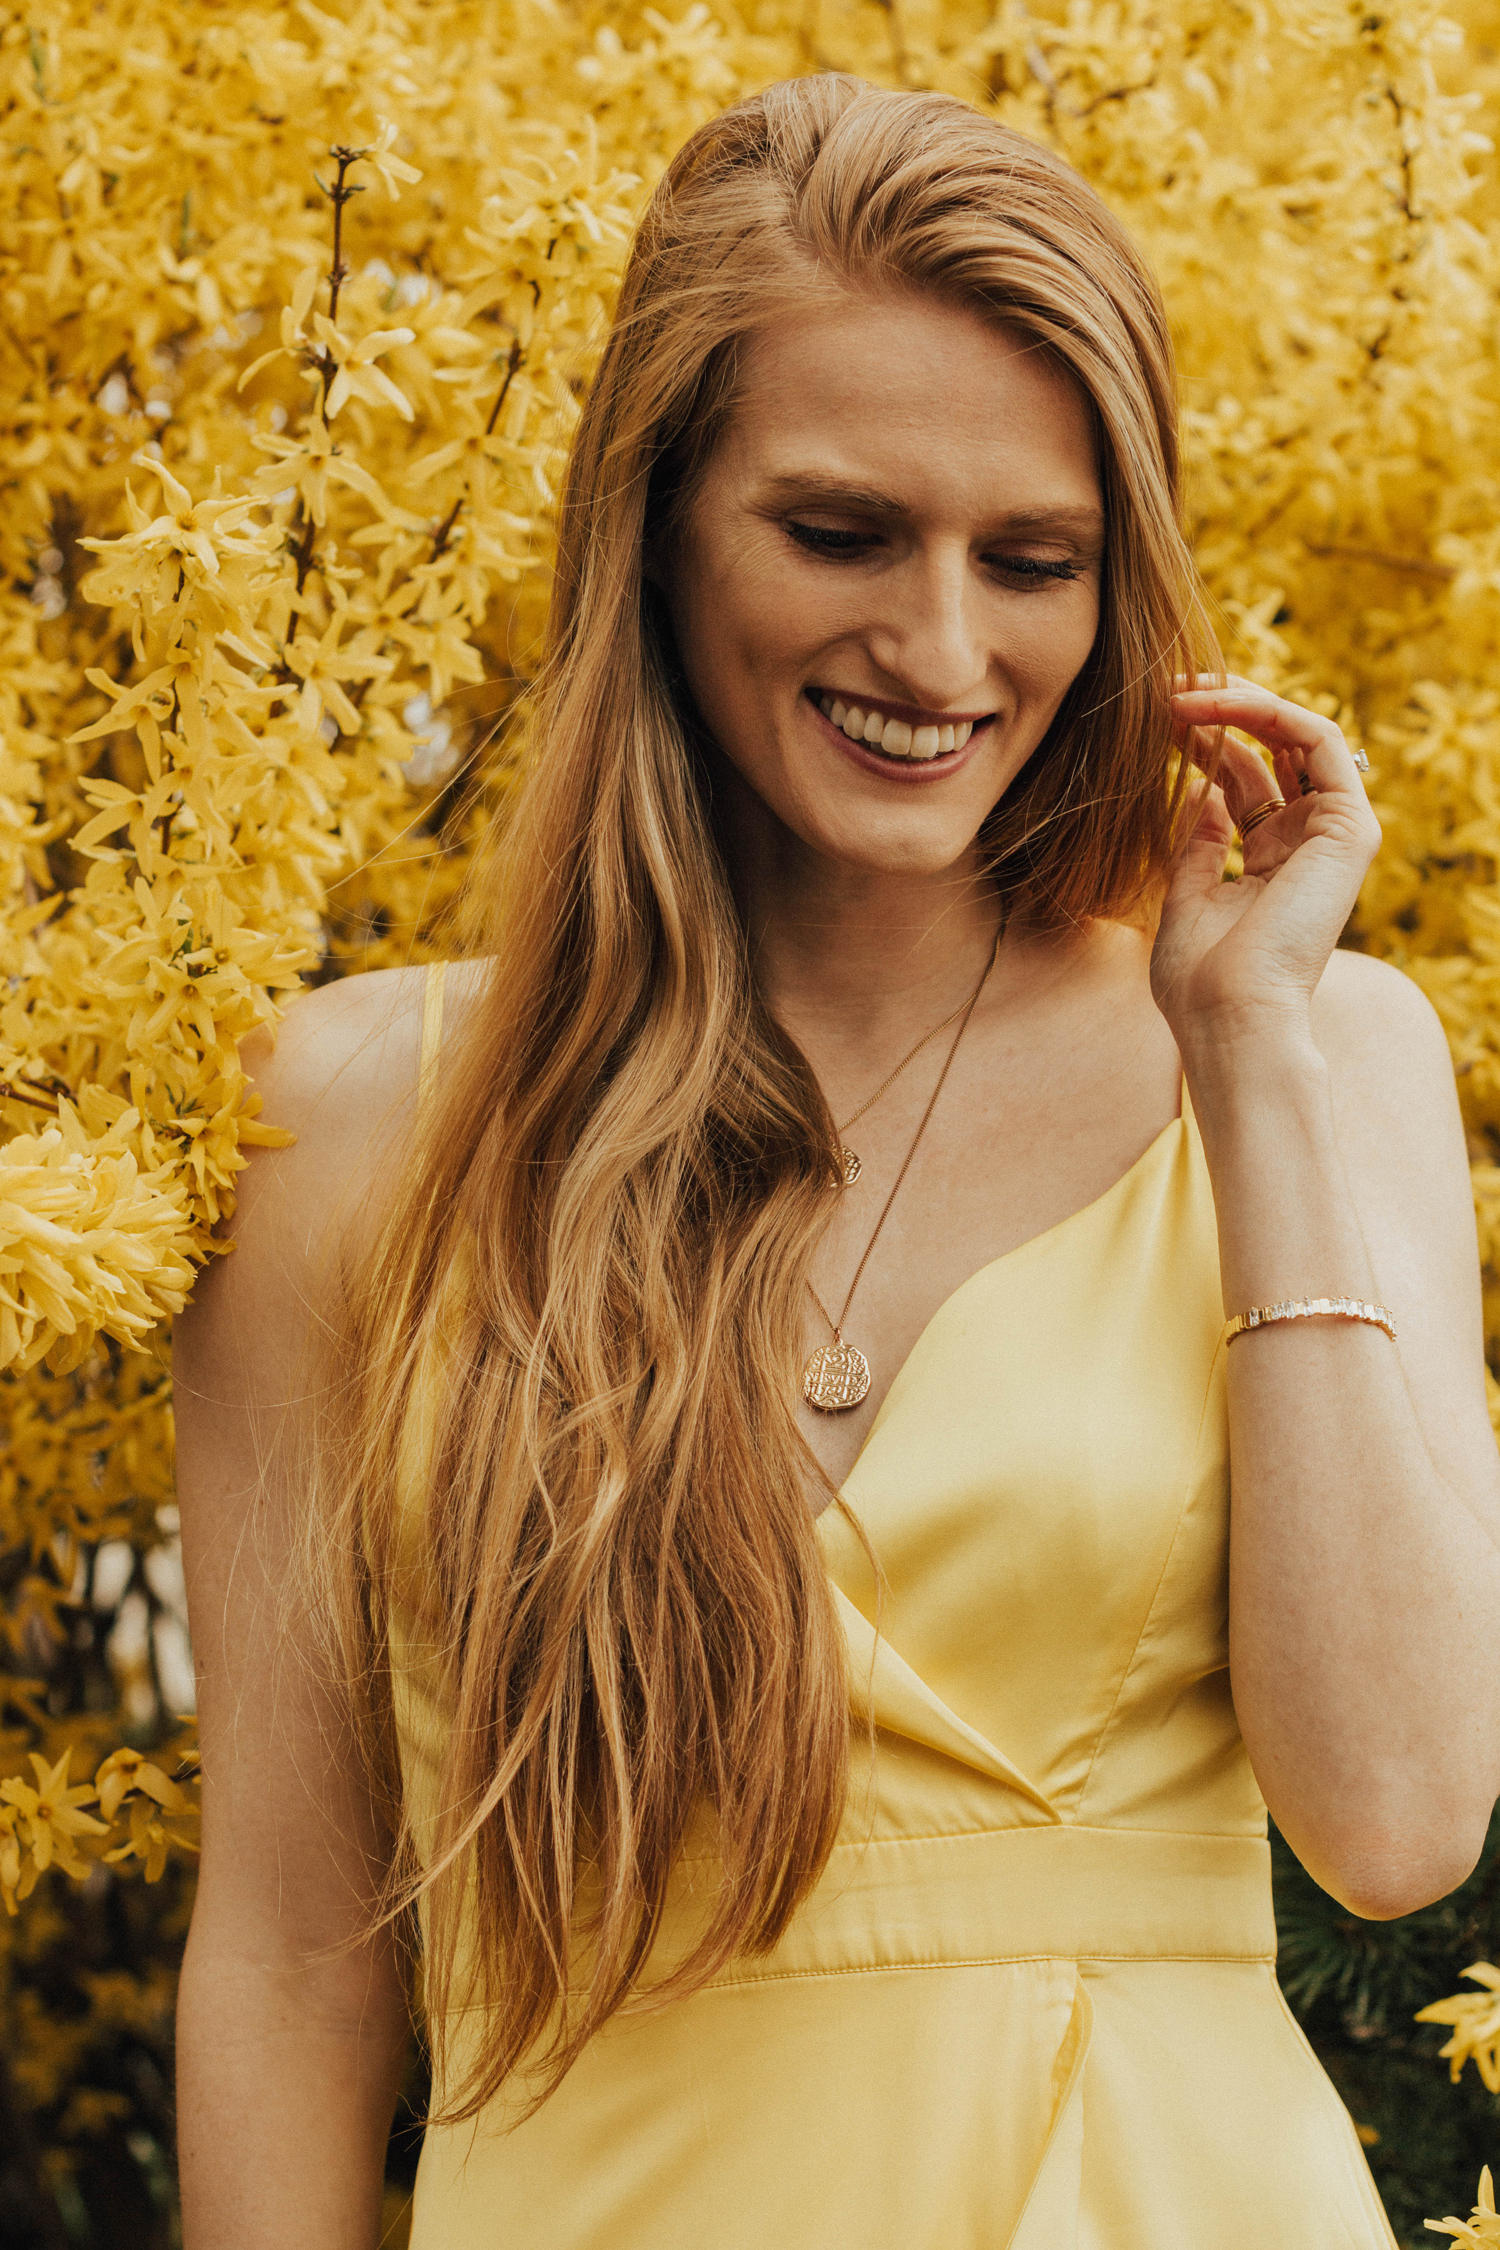 Yellow Dress for Spring and Summer by Laundry by Shelli Segal Forsythia Bush Cherry Blossoms Spring Bloom